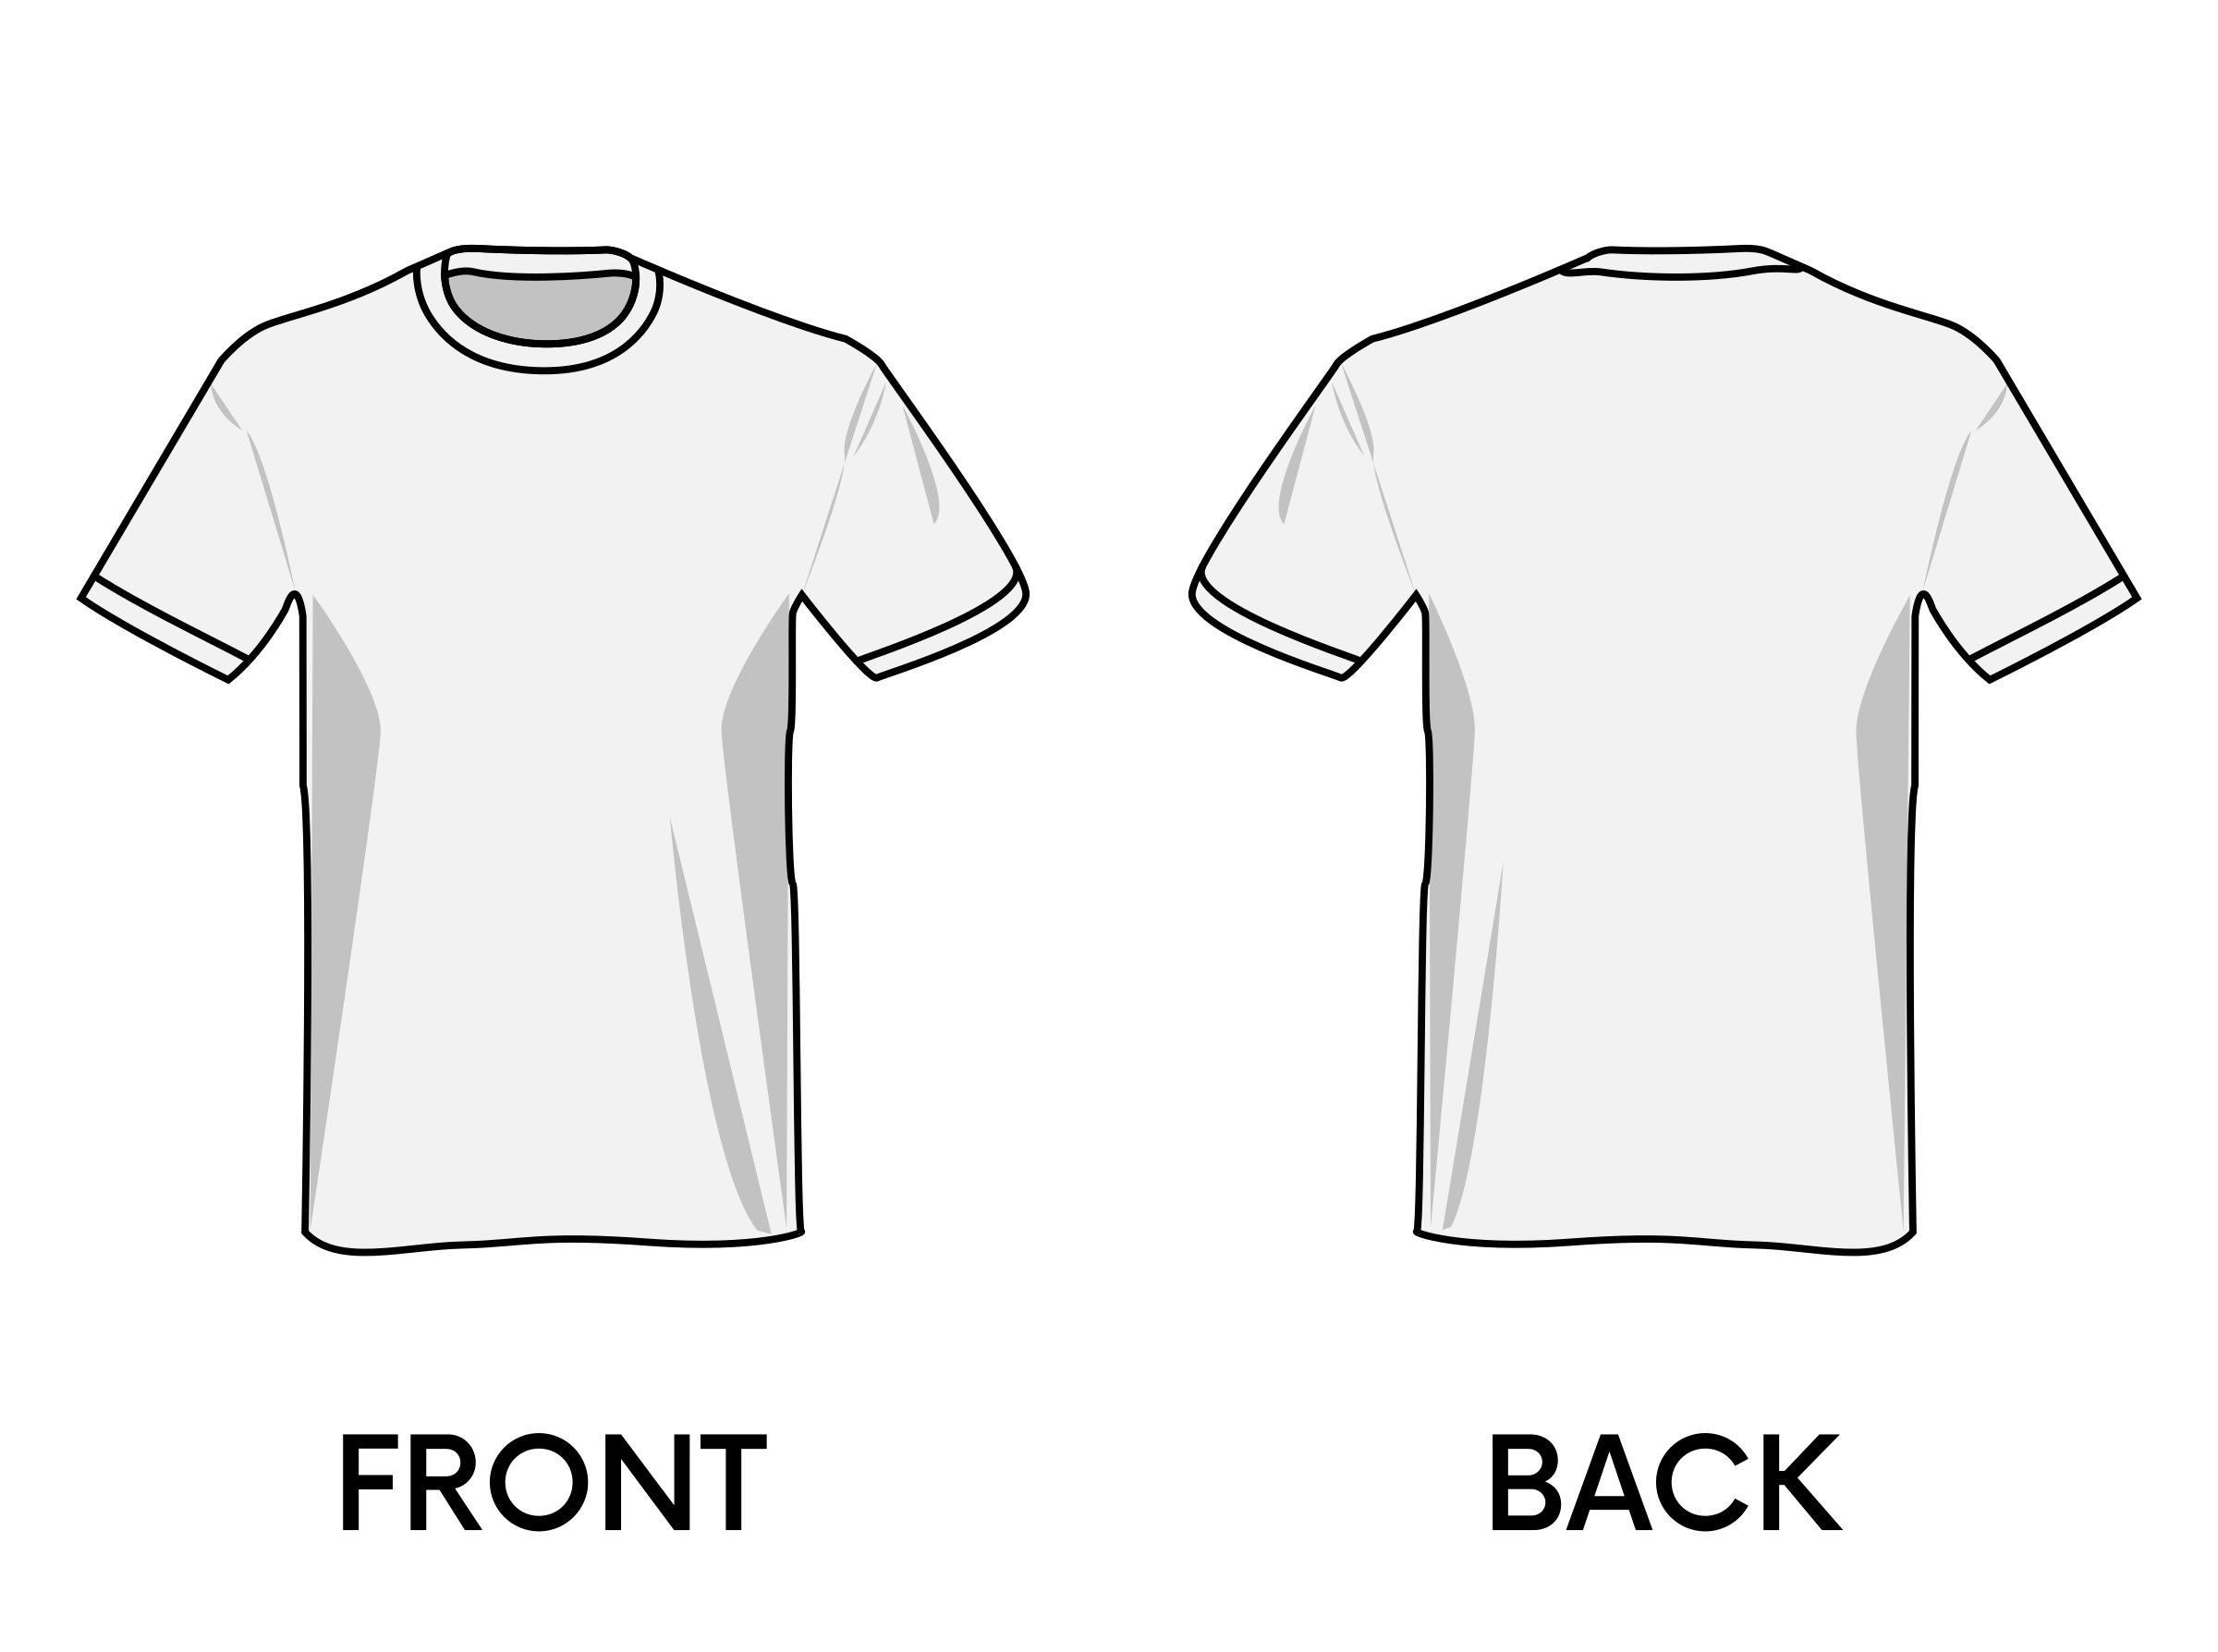 Black t shirt template png. Clipart big image